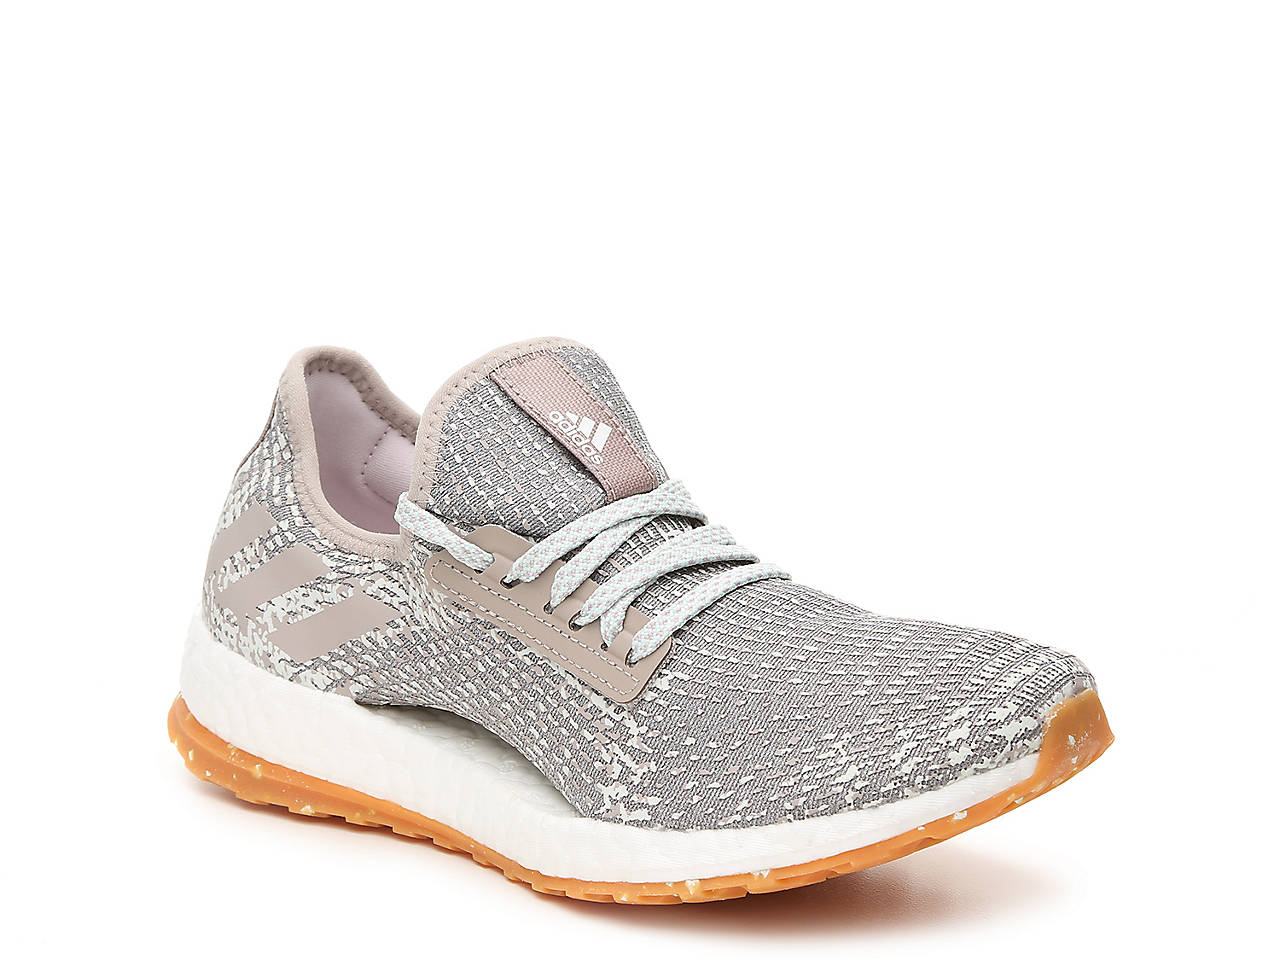 3757a4430 adidas PureBoost X ATR Running Shoe - Women s Women s Shoes